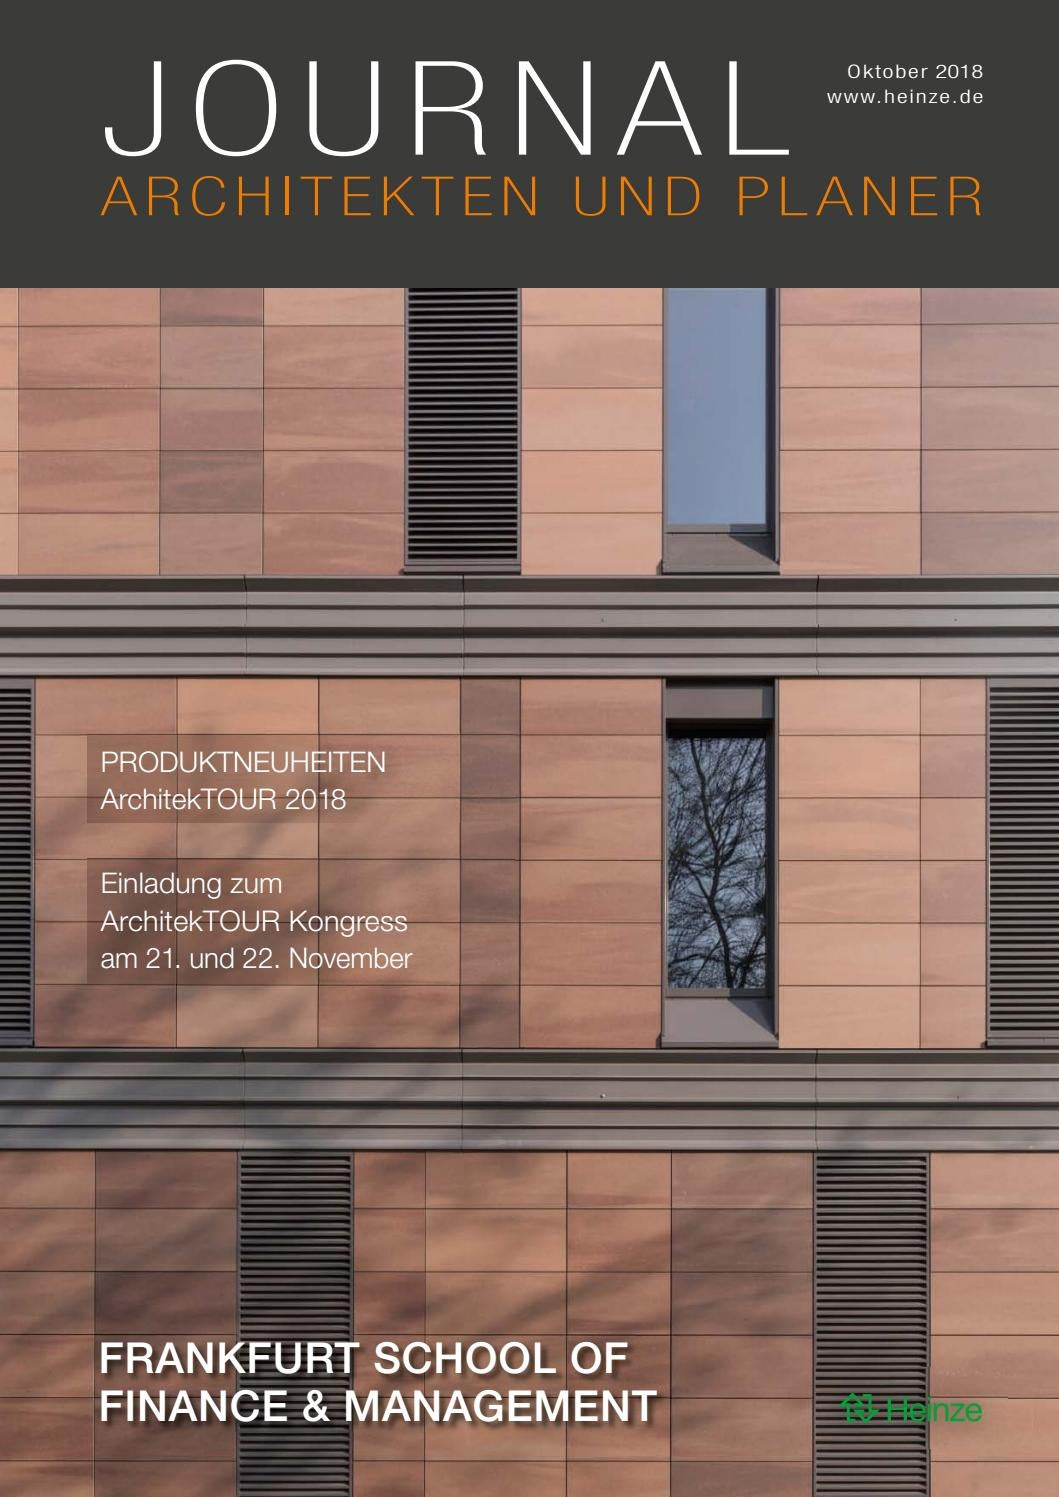 Architekt Lohne Journal Architekten Und Planer Oktober 2018